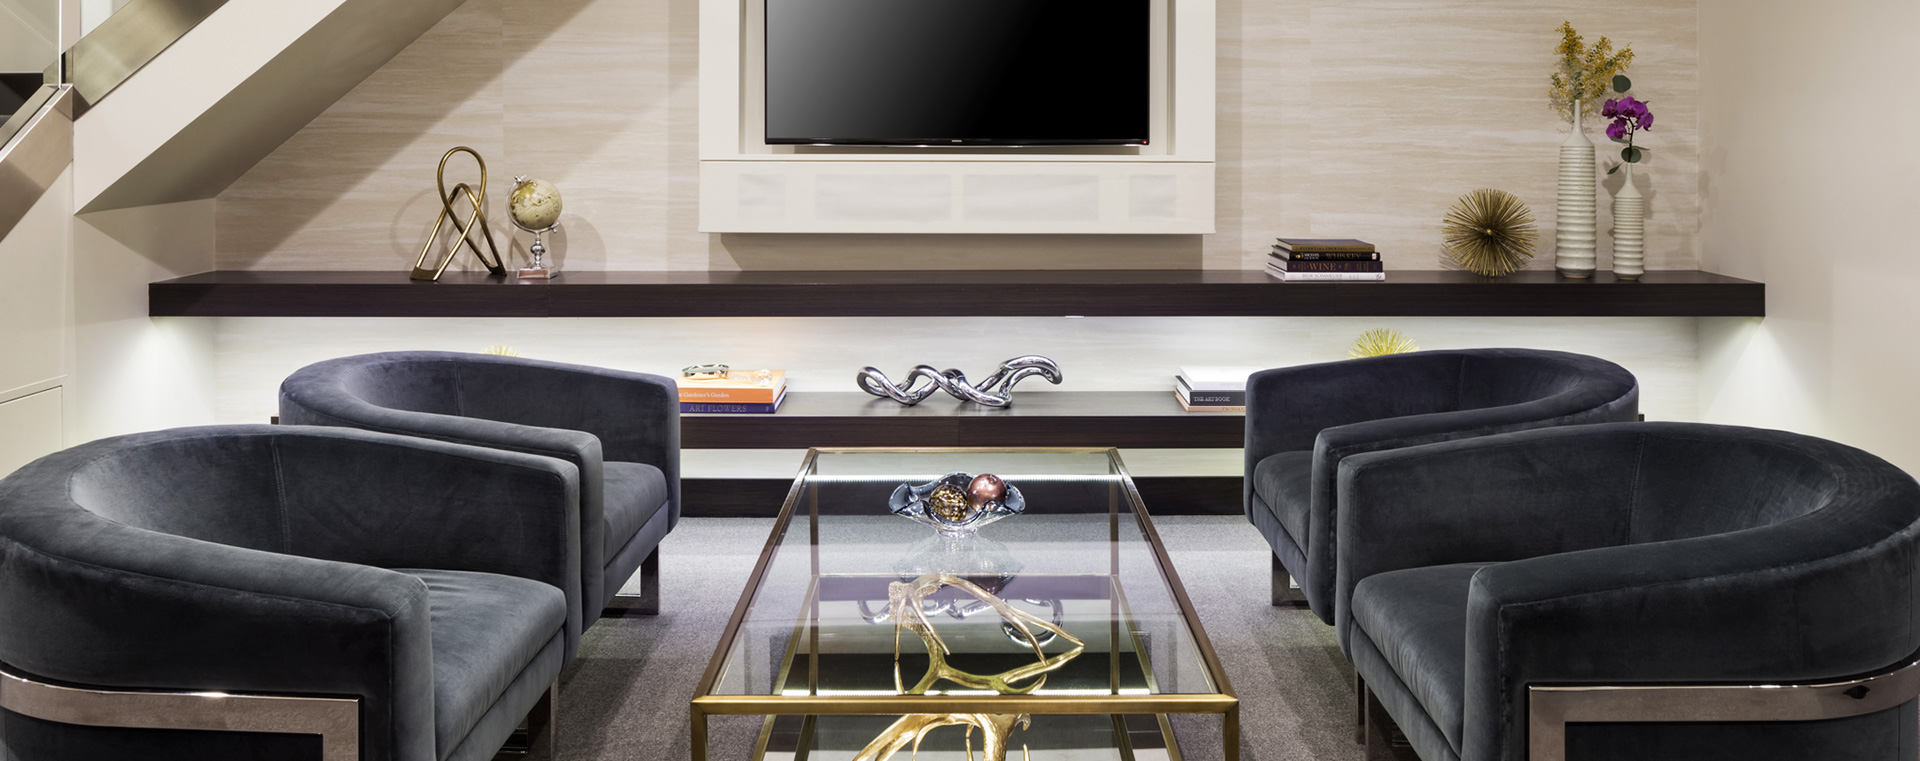 Suiten Your Stay at Hotel Ivy, A Luxury Collection Hotel, Minneapolis